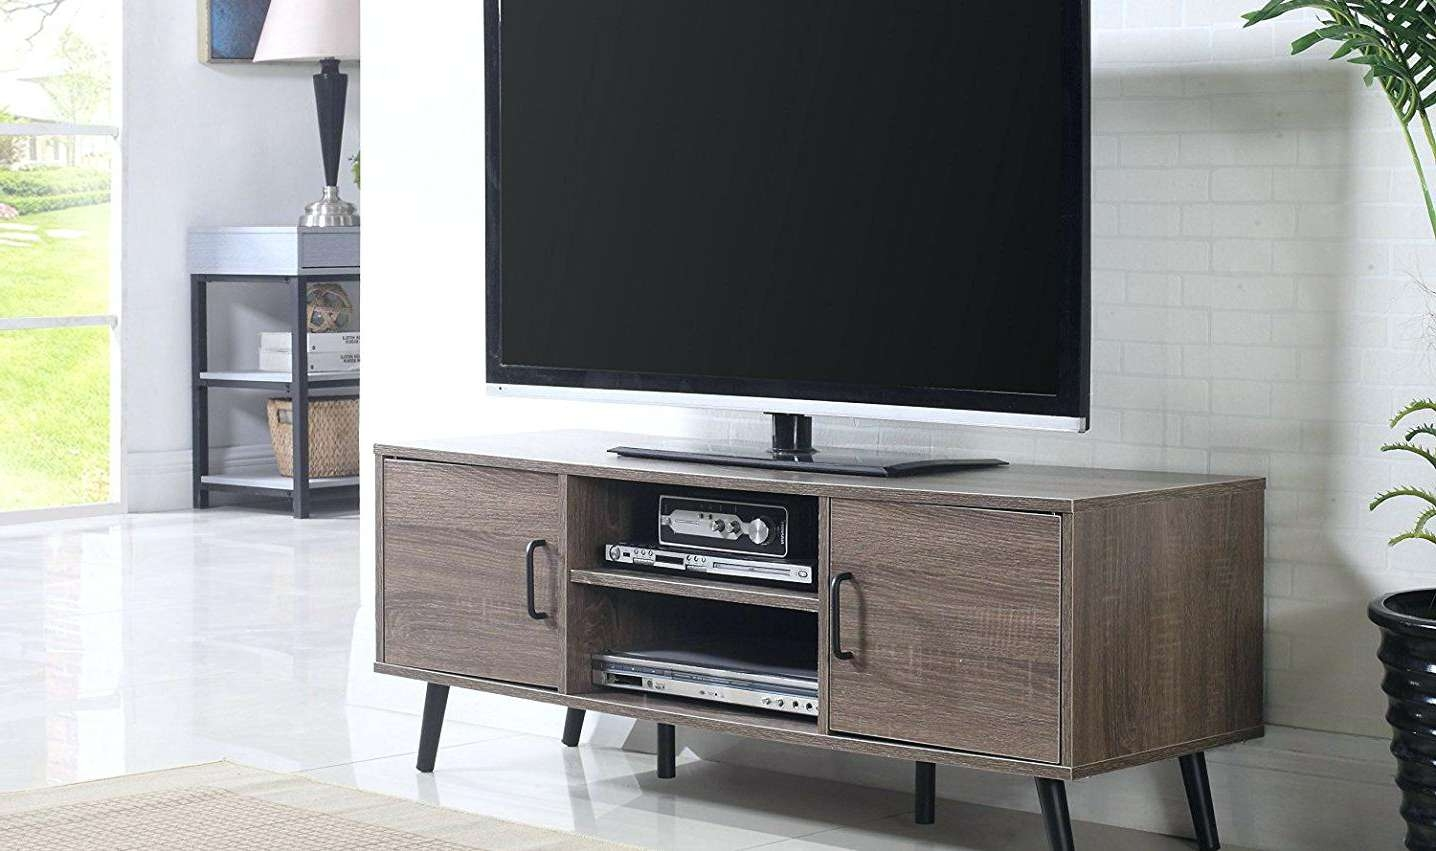 Tv Stand : All Modern Tv Stand People On Home Decoration 2 White Inside All Modern Tv Stands (View 15 of 15)